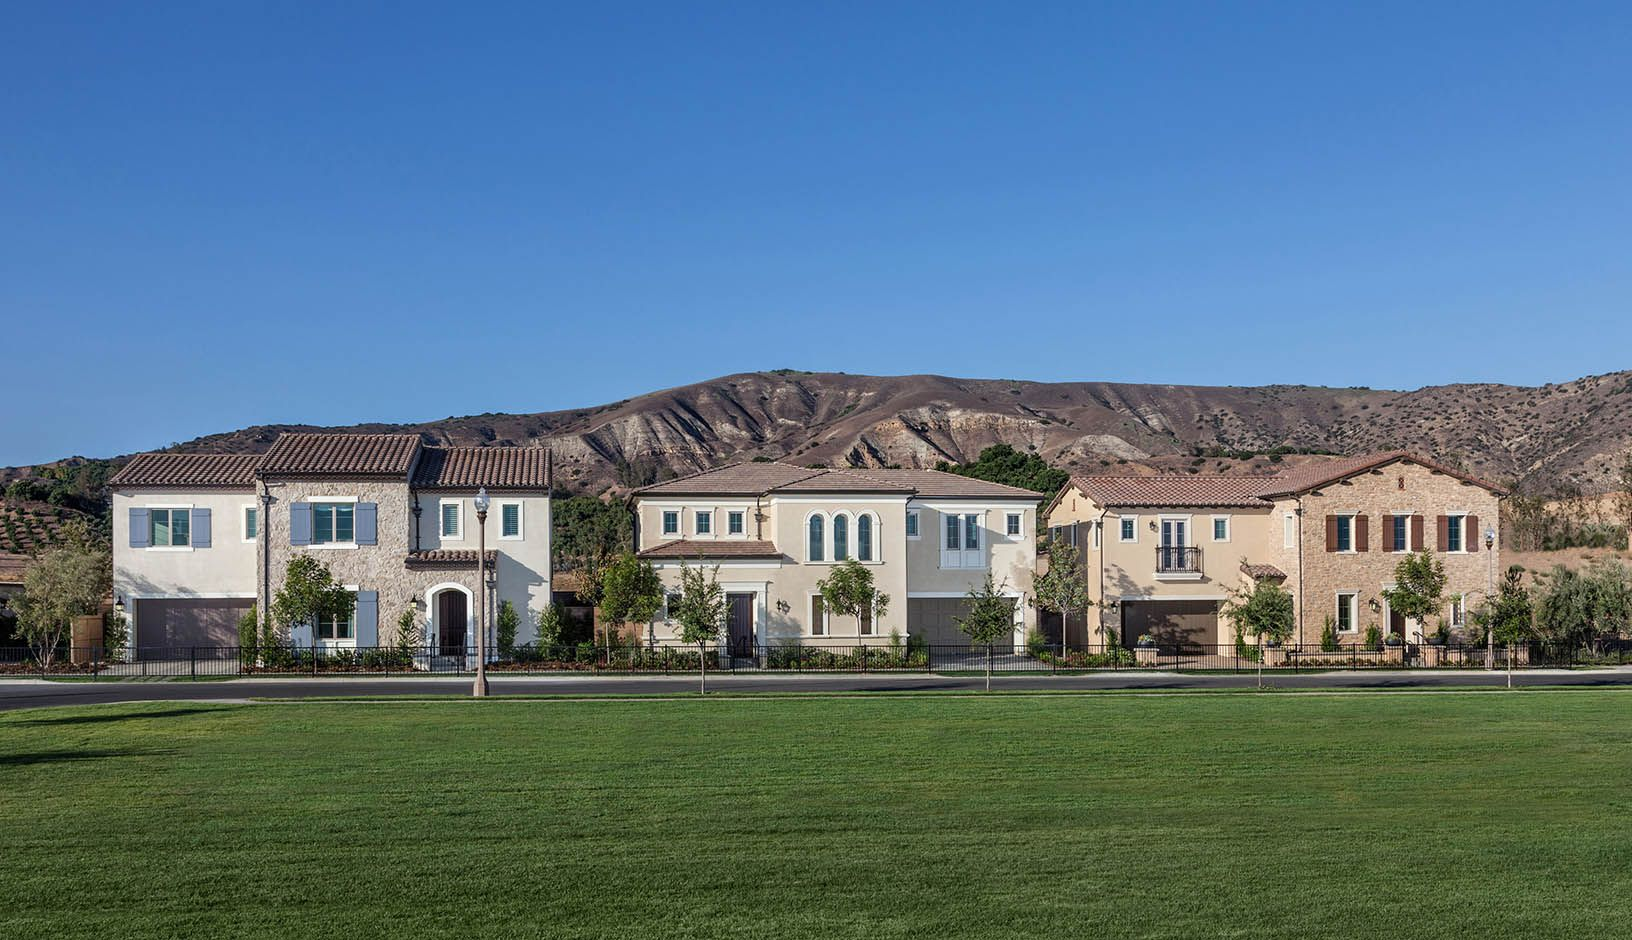 'Single Family' building or community at 'Varenna at Orchard Hills Irvine, California 92602 United States'